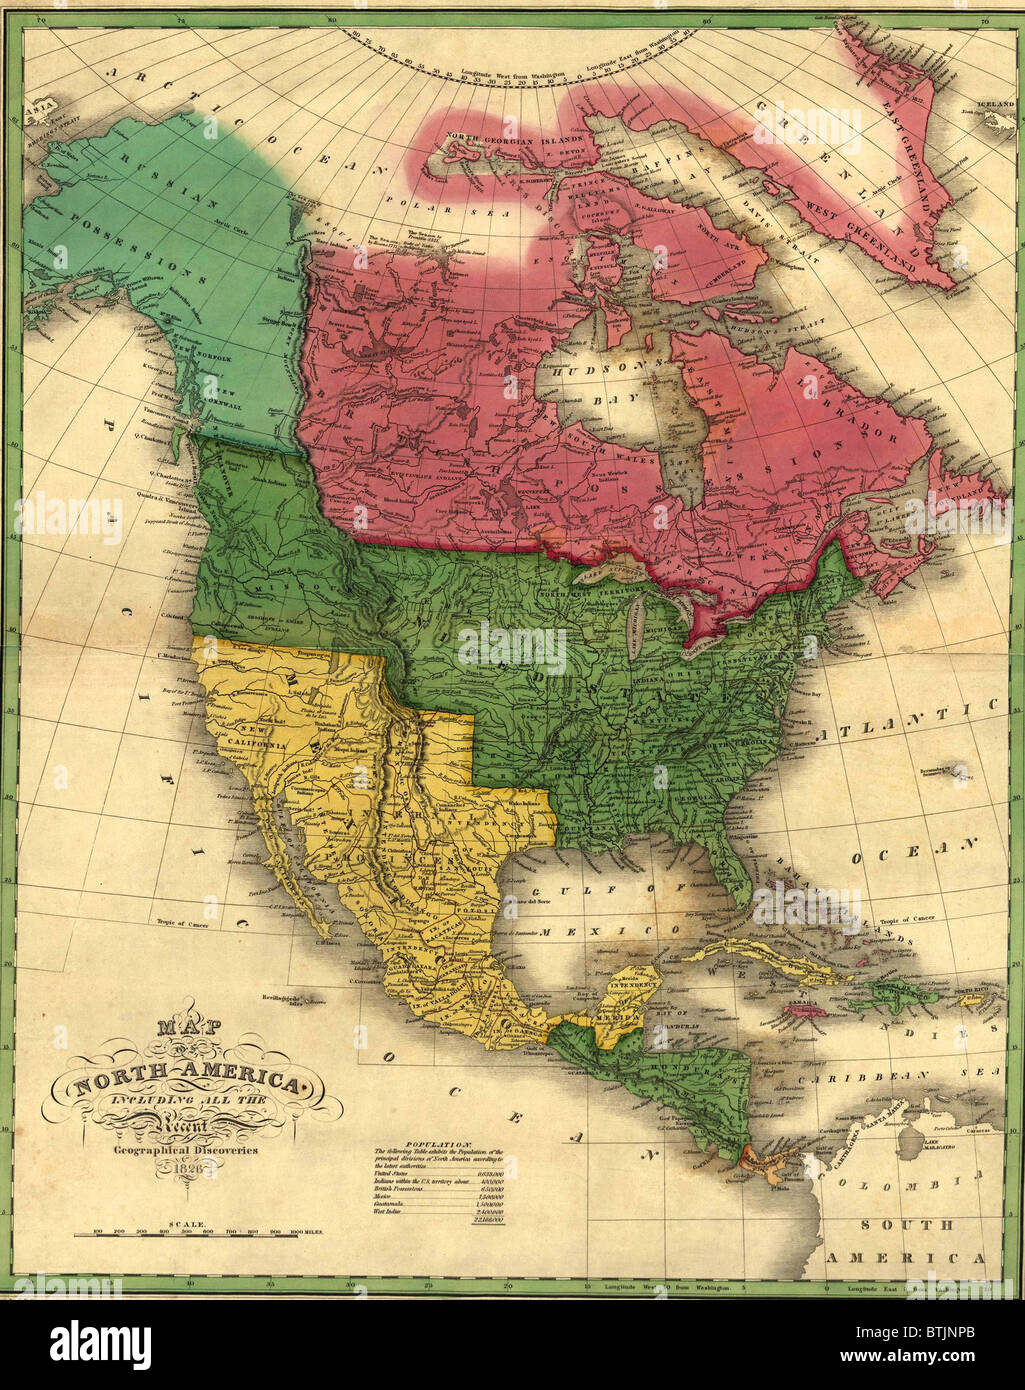 north american political boundaries in 1826 image shows the louisiana purchase and oregon territory alaska is labeled as a russian possession canada does